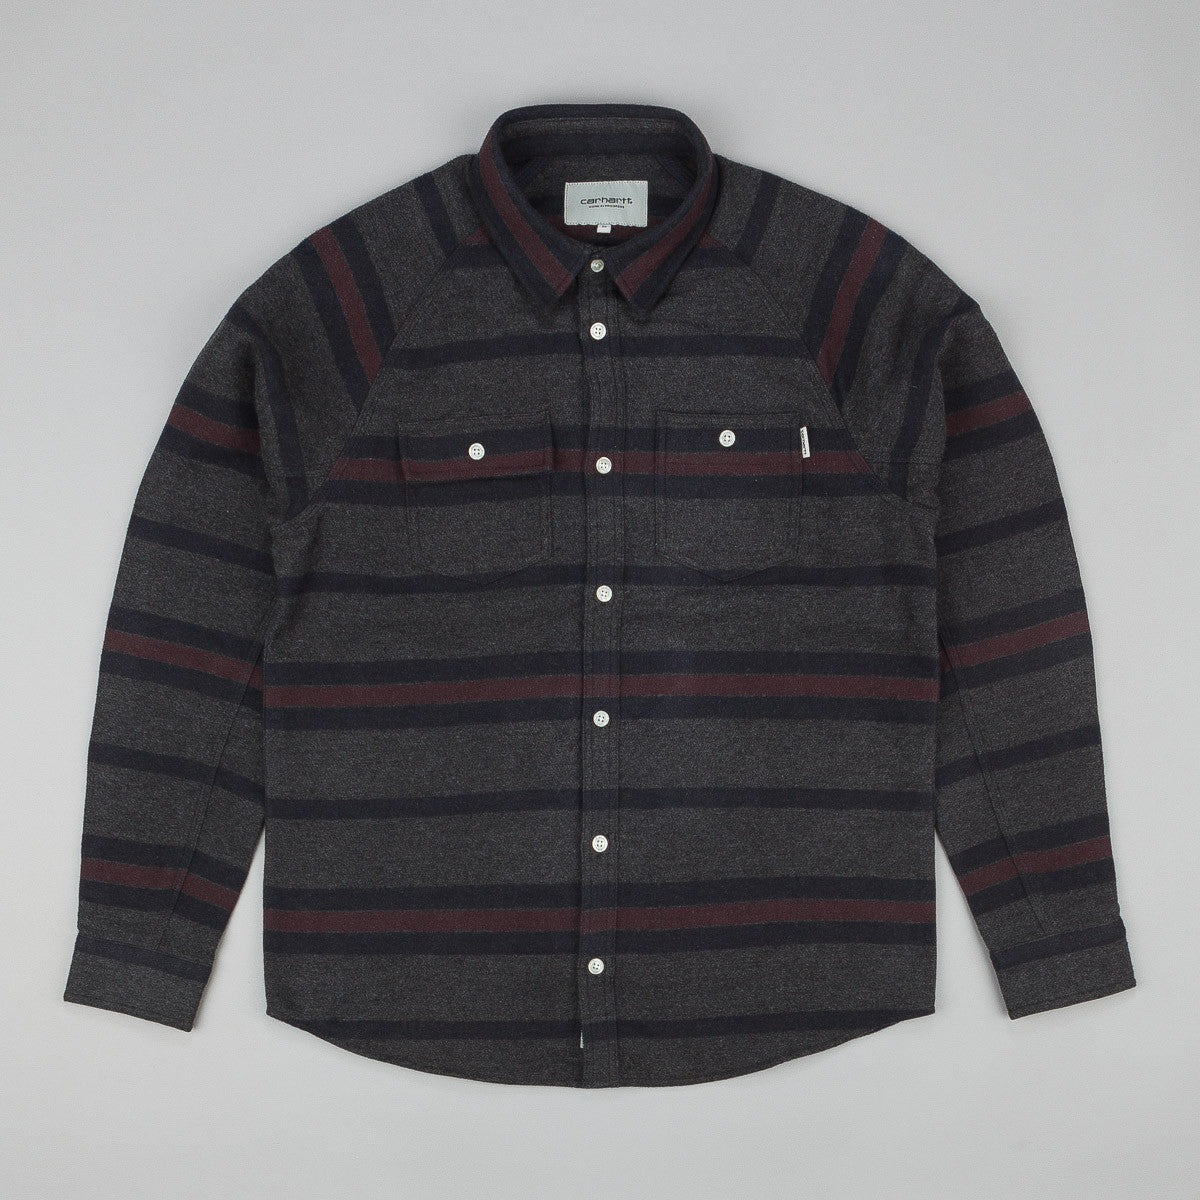 Carhartt Blanket Flannel Long Sleeve Shirt